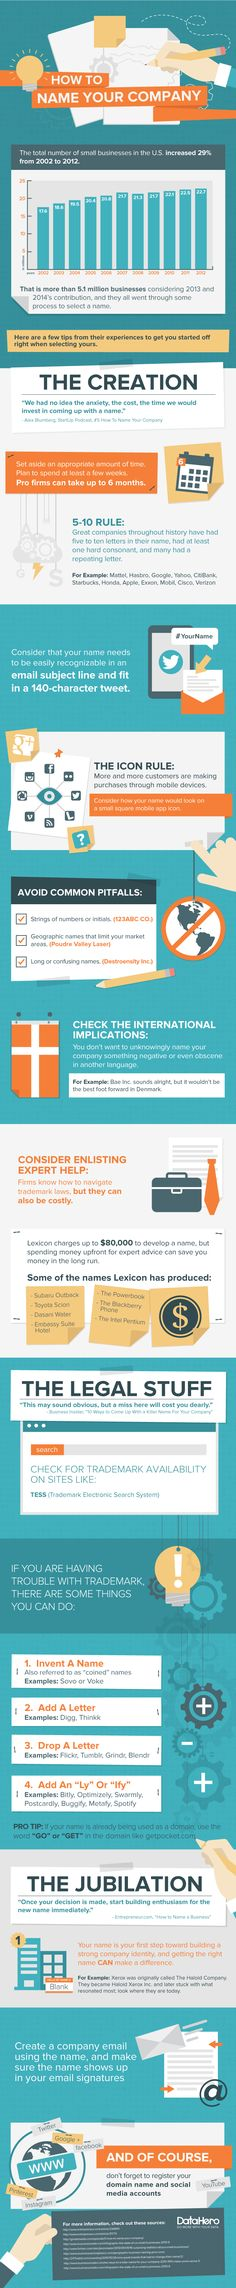 How to Name Your Company (Infographic) via @angela4design from Inc.com